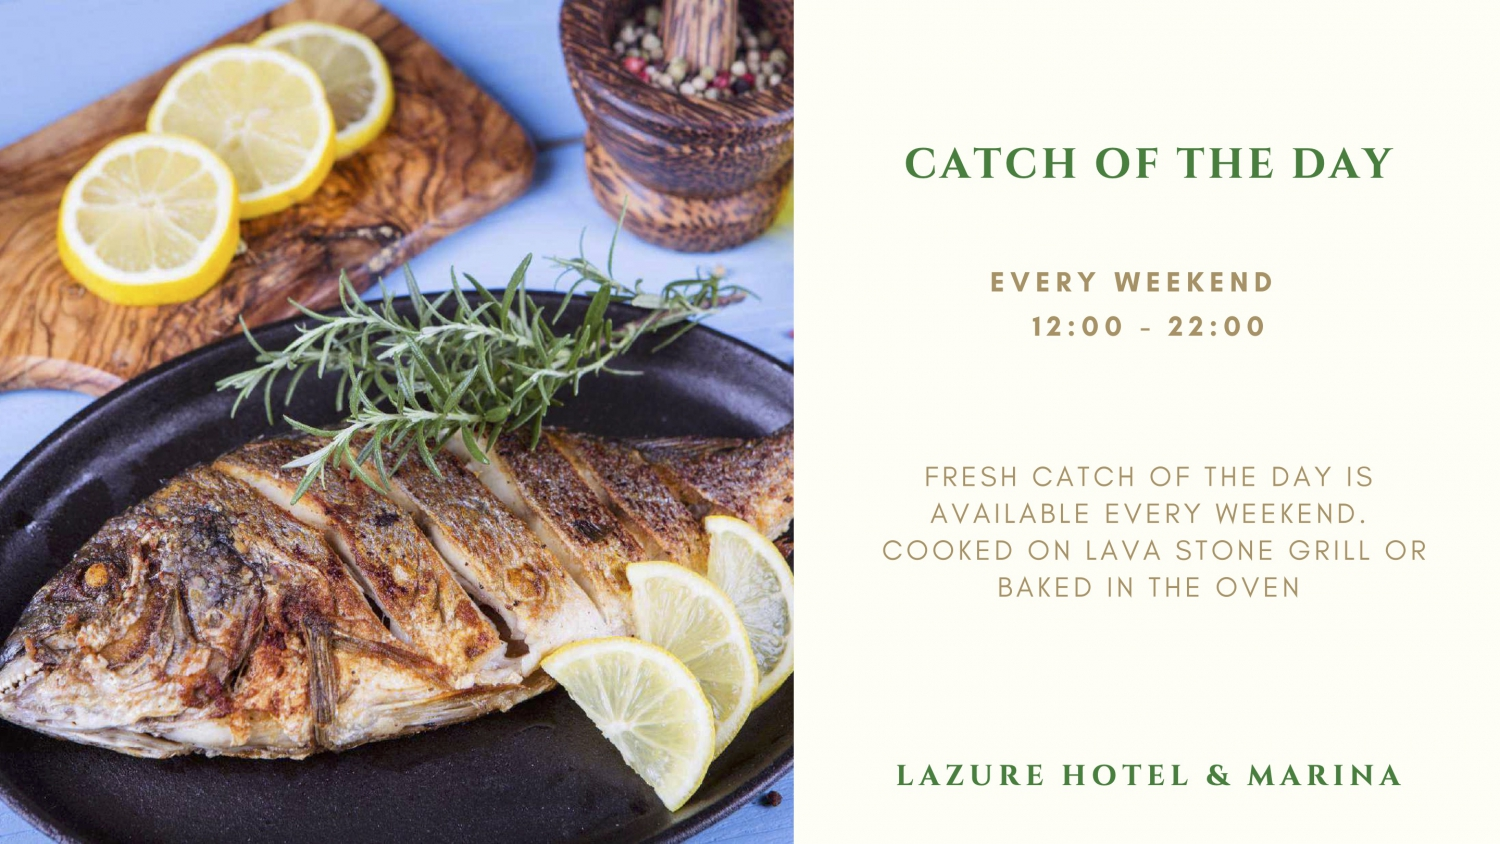 Special Offer: Catch of The Day by Lazure Hotel